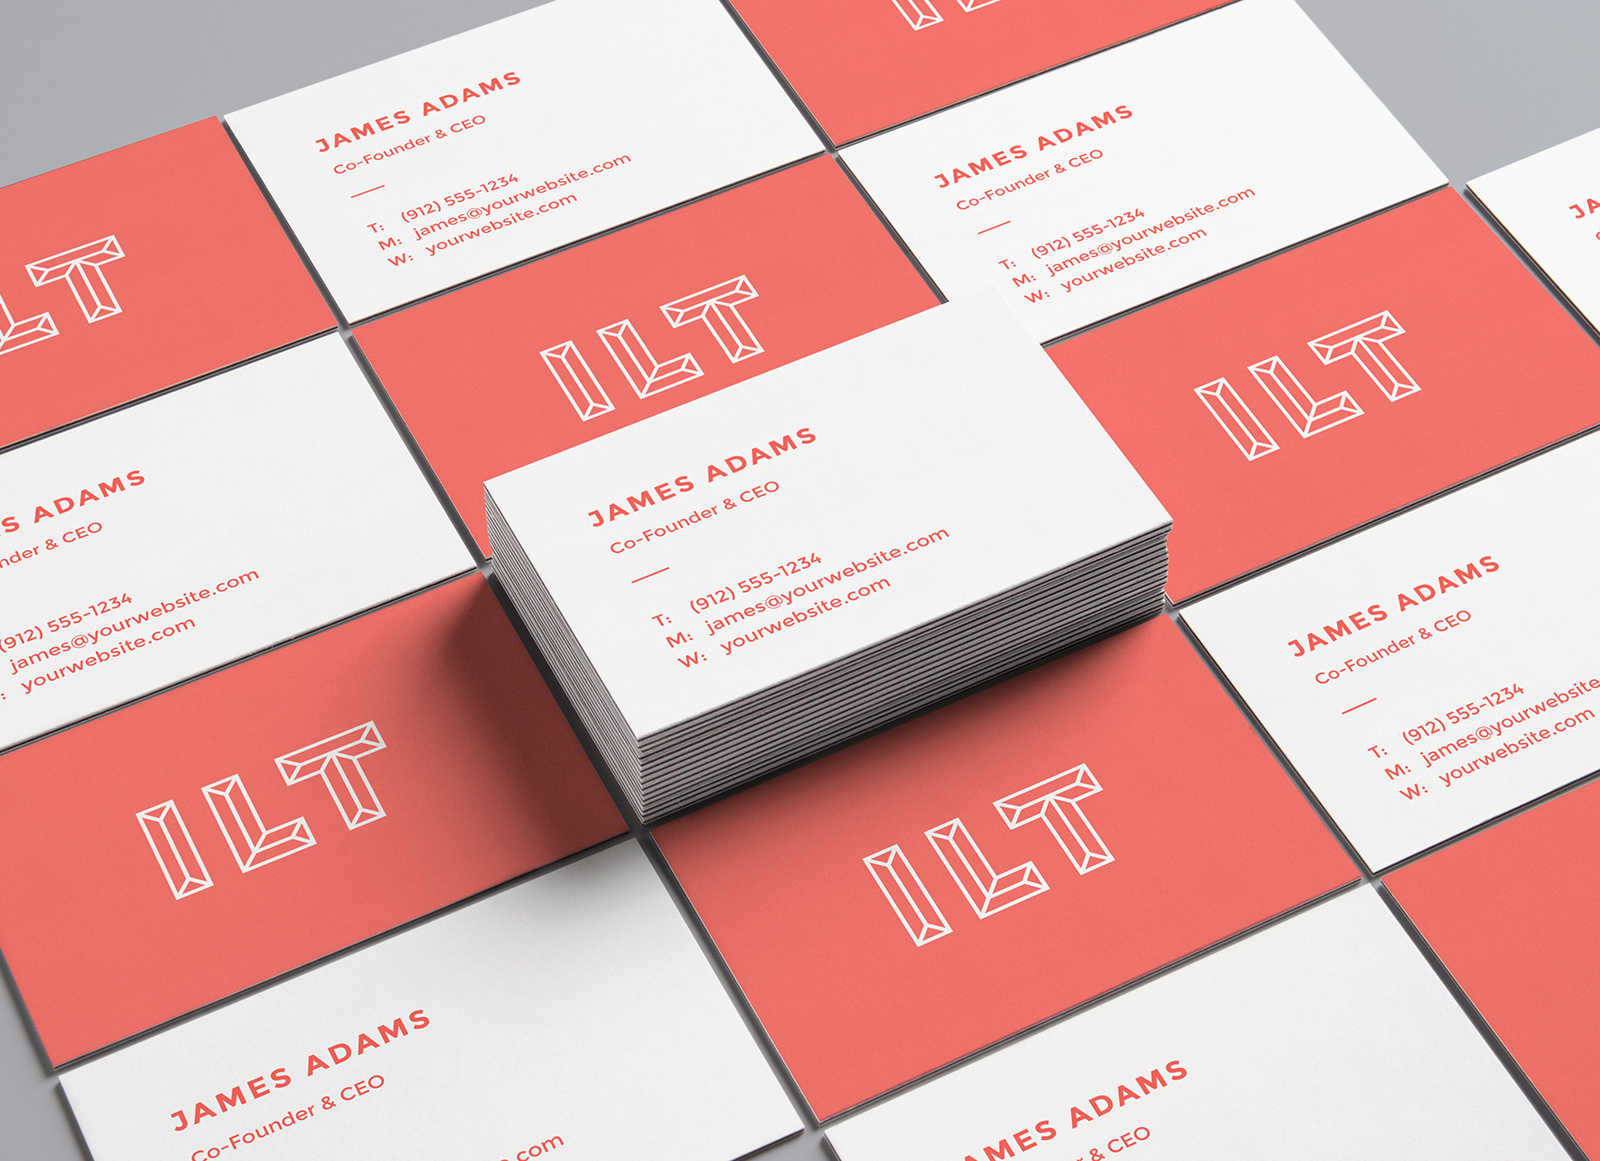 Free perspective business card mockup psd presentation good mockups free perspective business cards mockup psd reheart Gallery